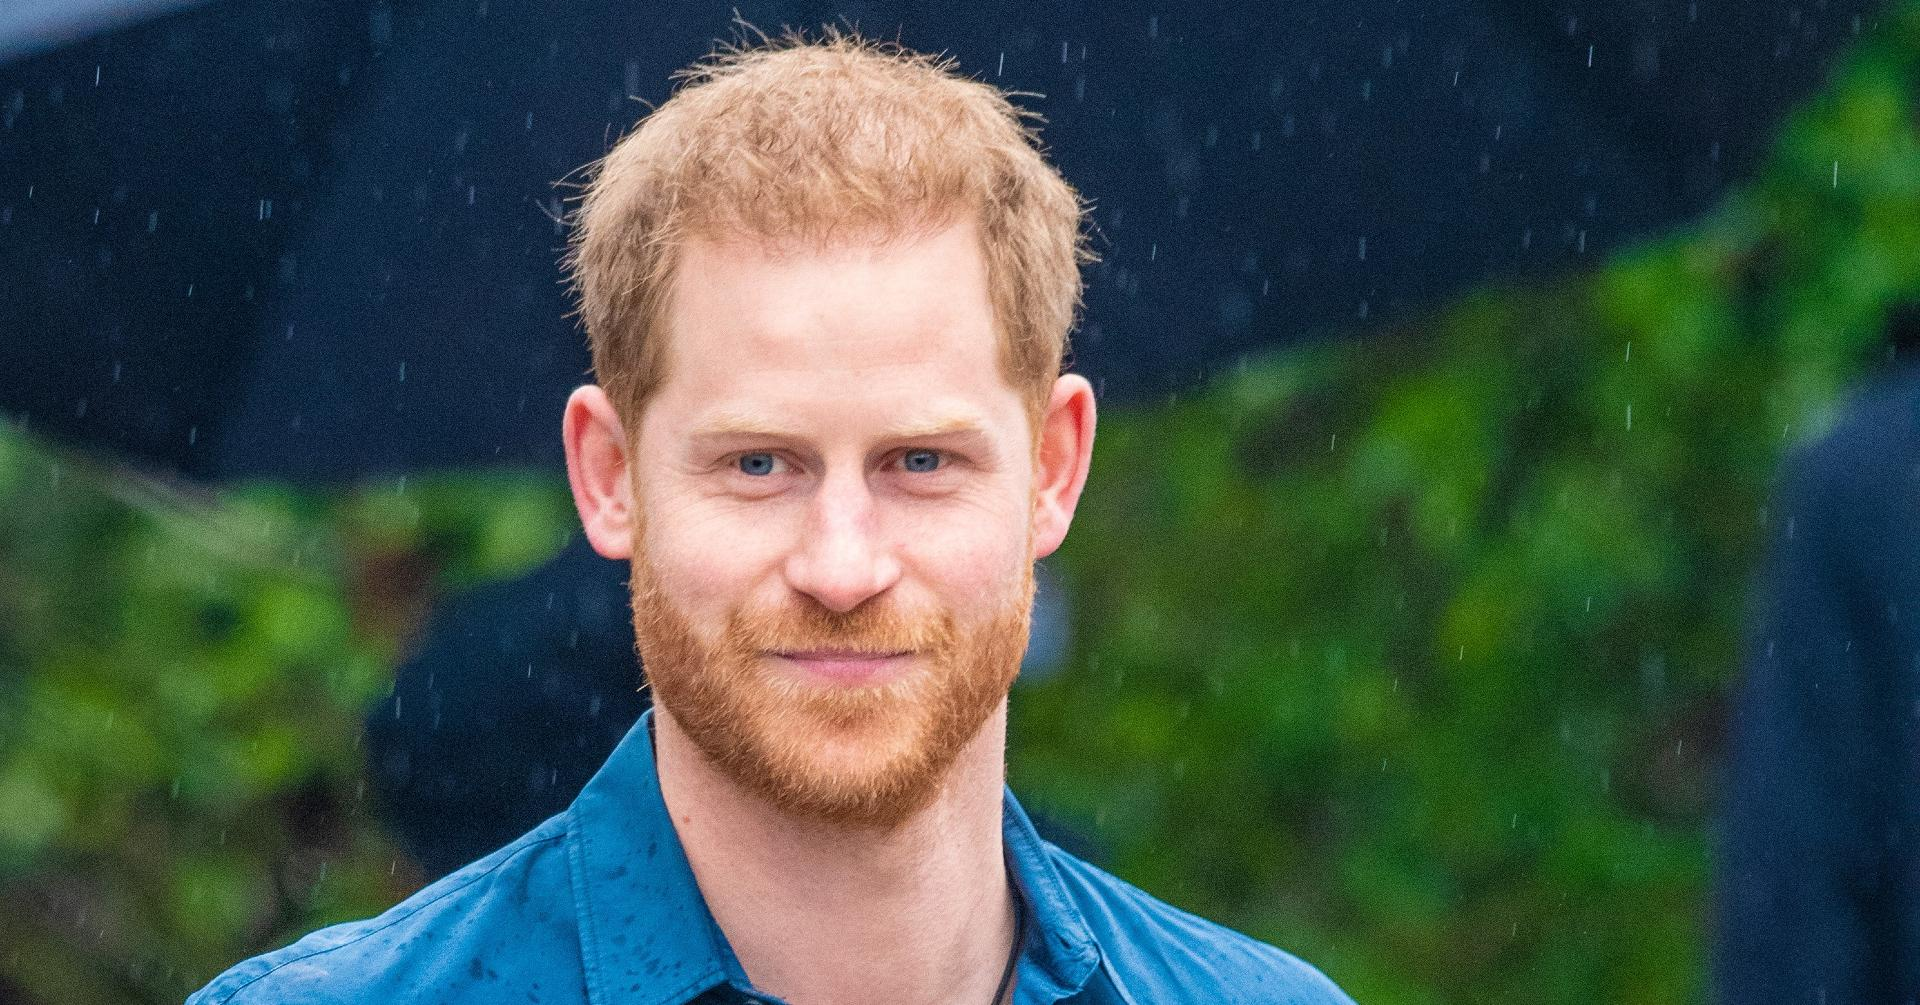 prince harry wins significant damages lawsuit mail on sunday mailonline royal marines article